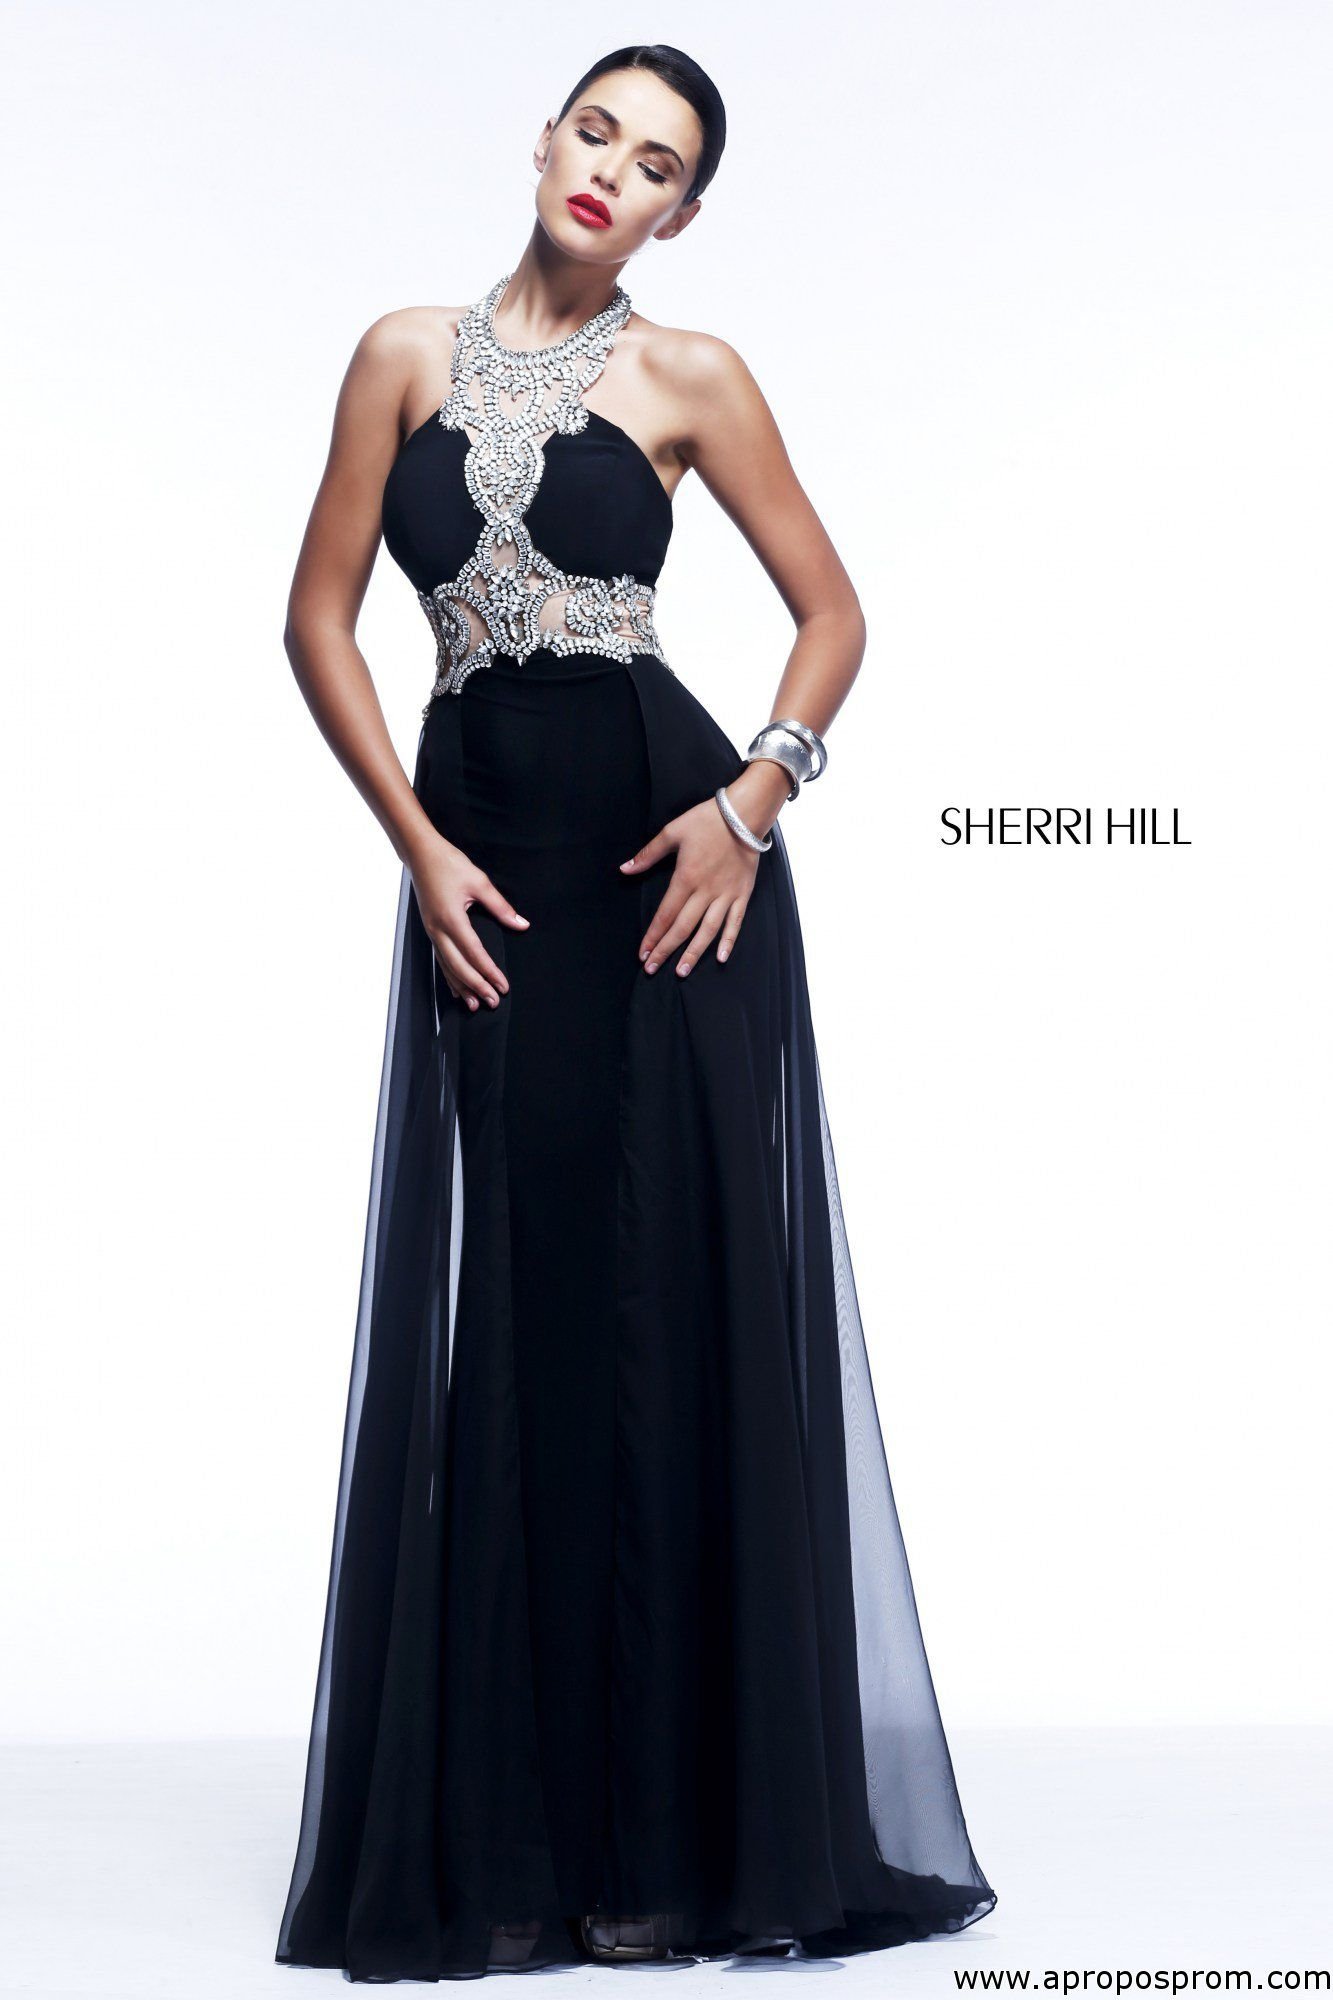 Sherri Hill 11121 Apropos Prom and Bridal Sleek black prom gown ...